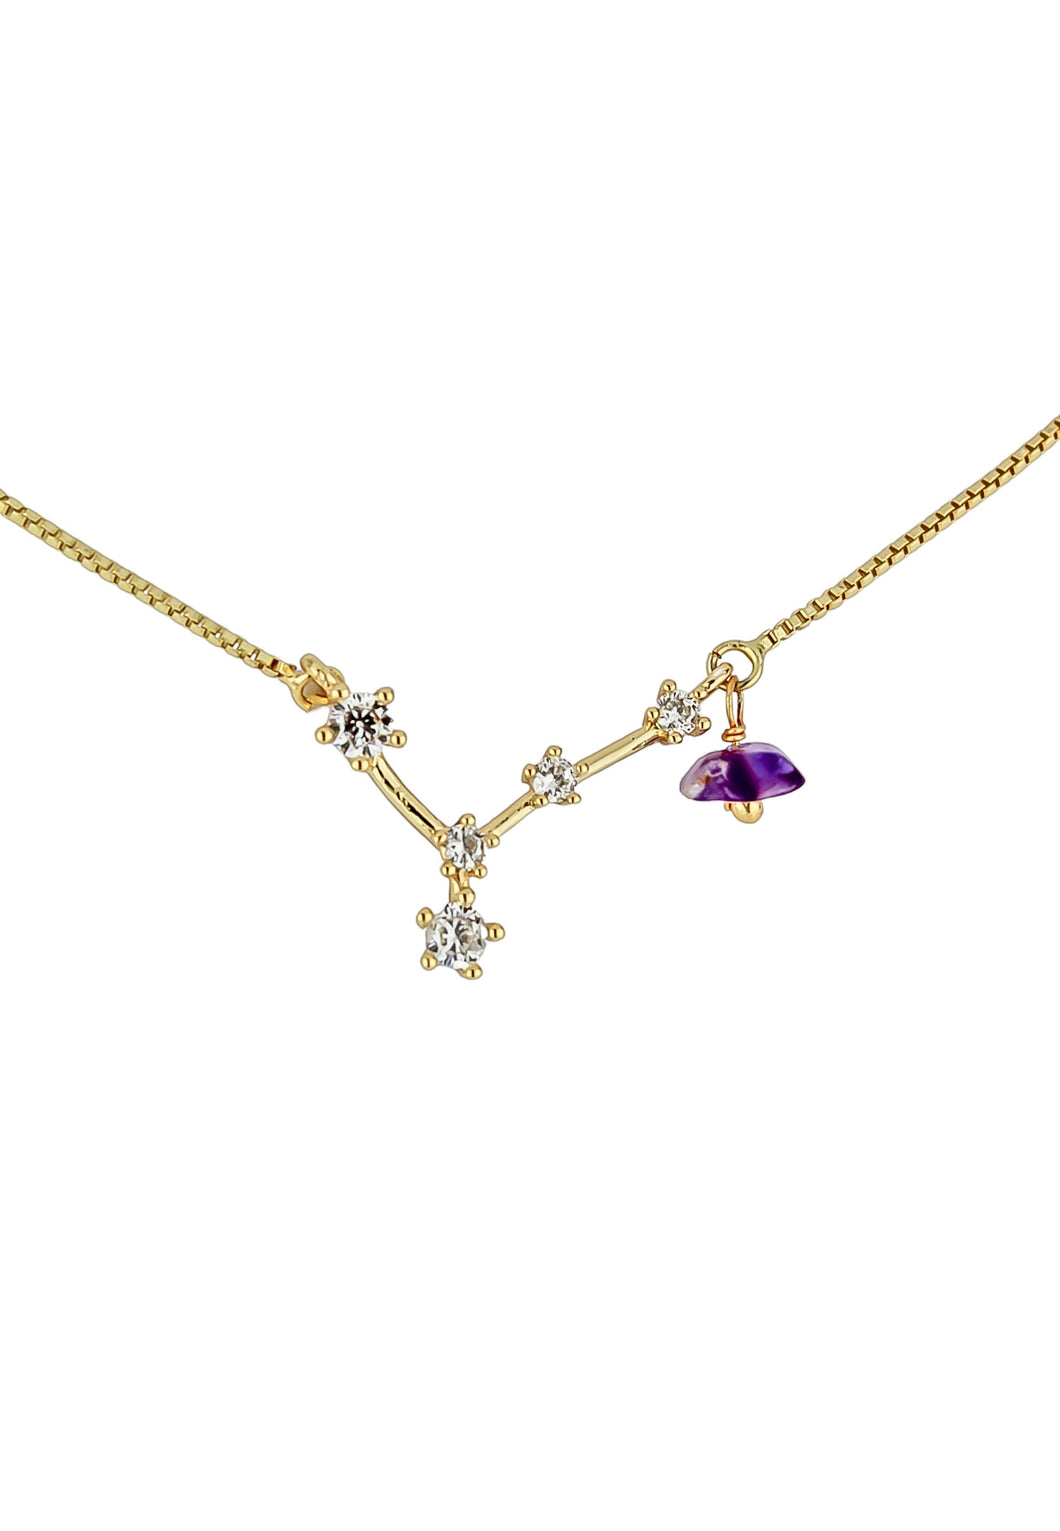 Pisces Necklace with Amethyst